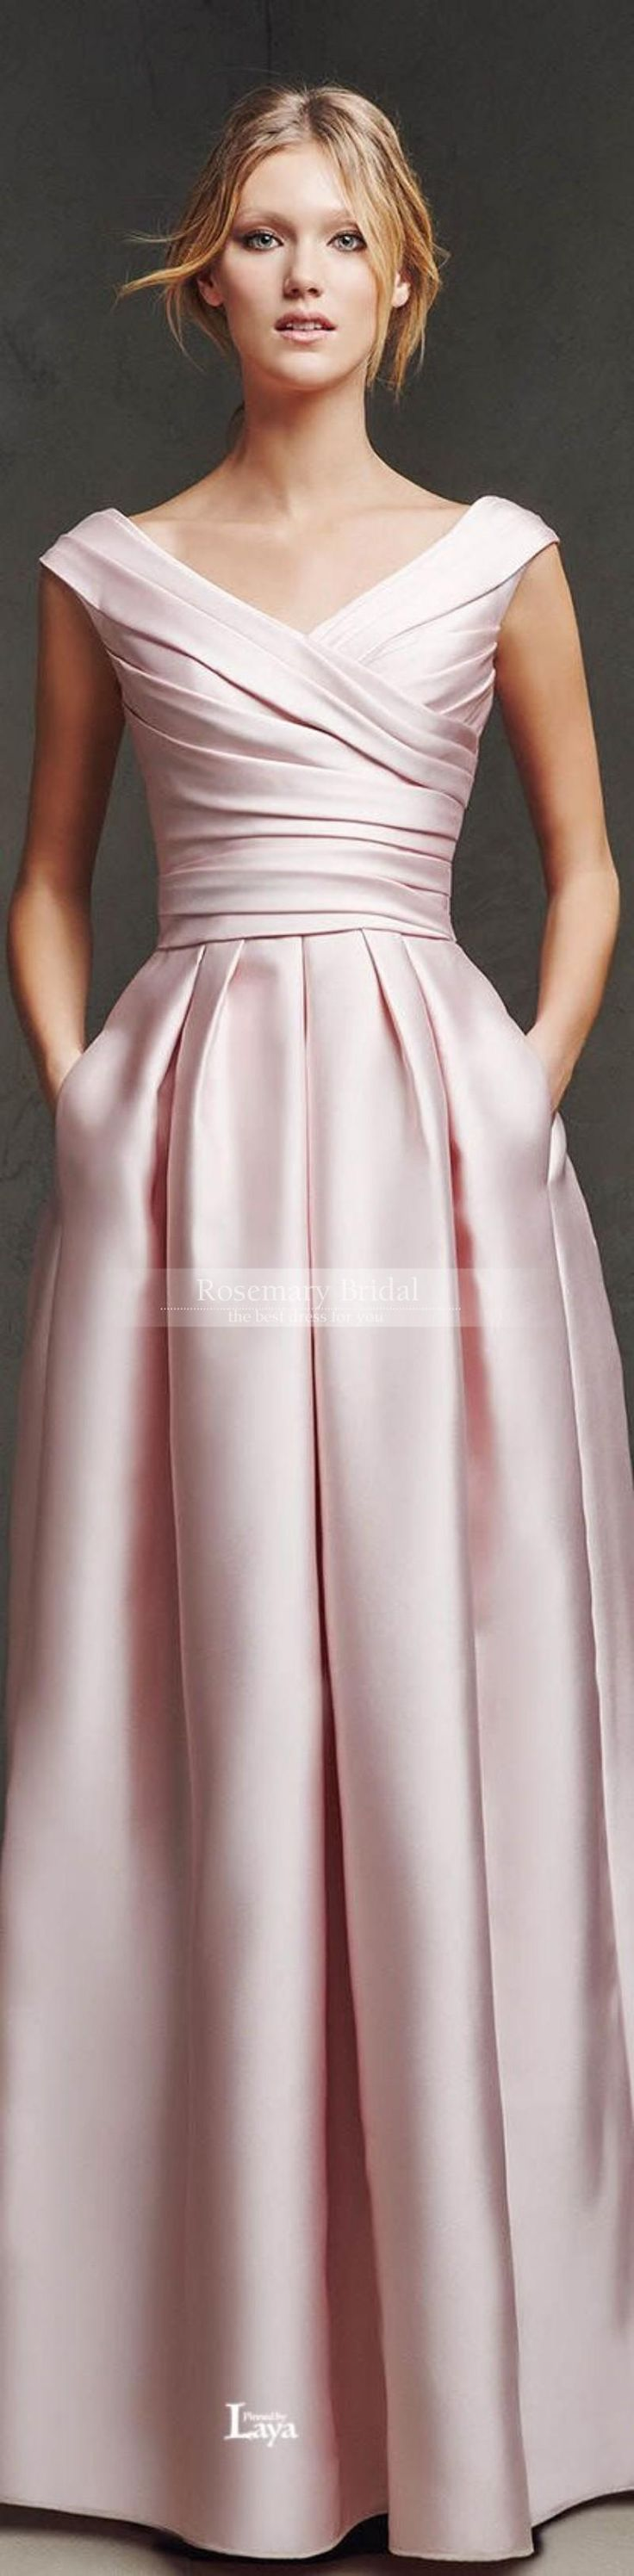 Best 25 bridesmaid dresses with sleeves ideas on pinterest cheap elegant winter 2016 pleats a line v neck cap sleeve long floor length pink satin wedding bridesmaid dresses custom made cheap plus size as low as ombrellifo Image collections